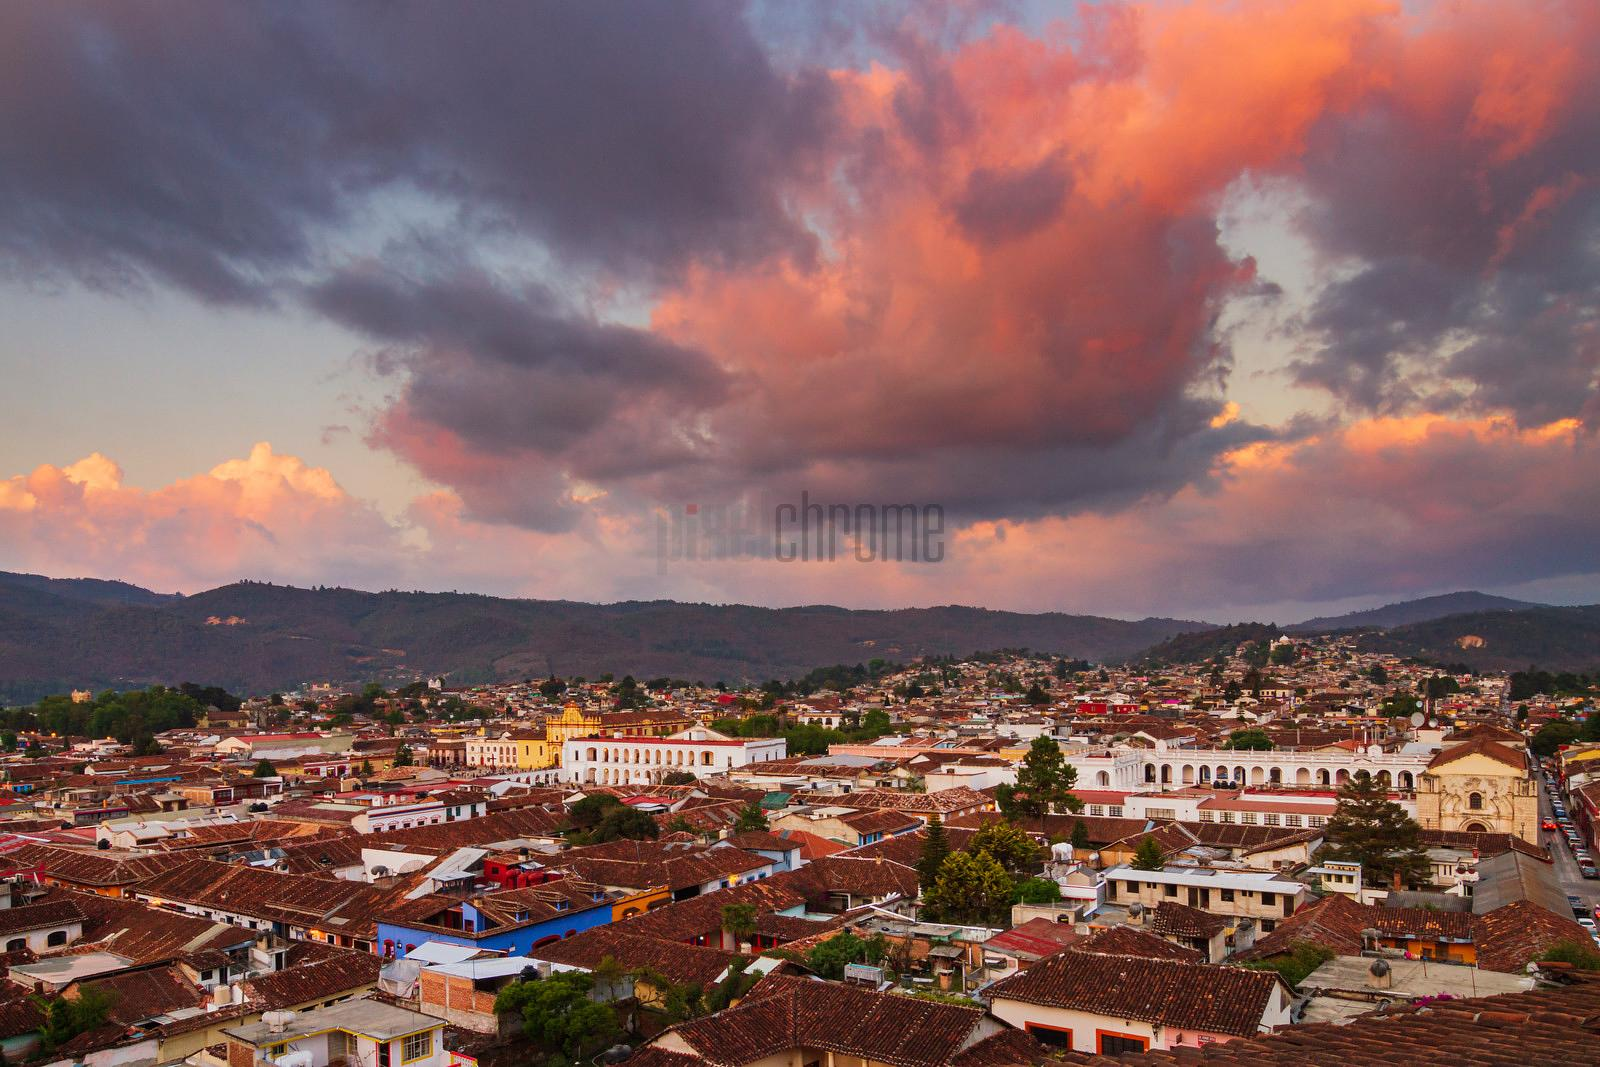 Elevated View of the Skyline of San Cristobal de las Casas at Dusk